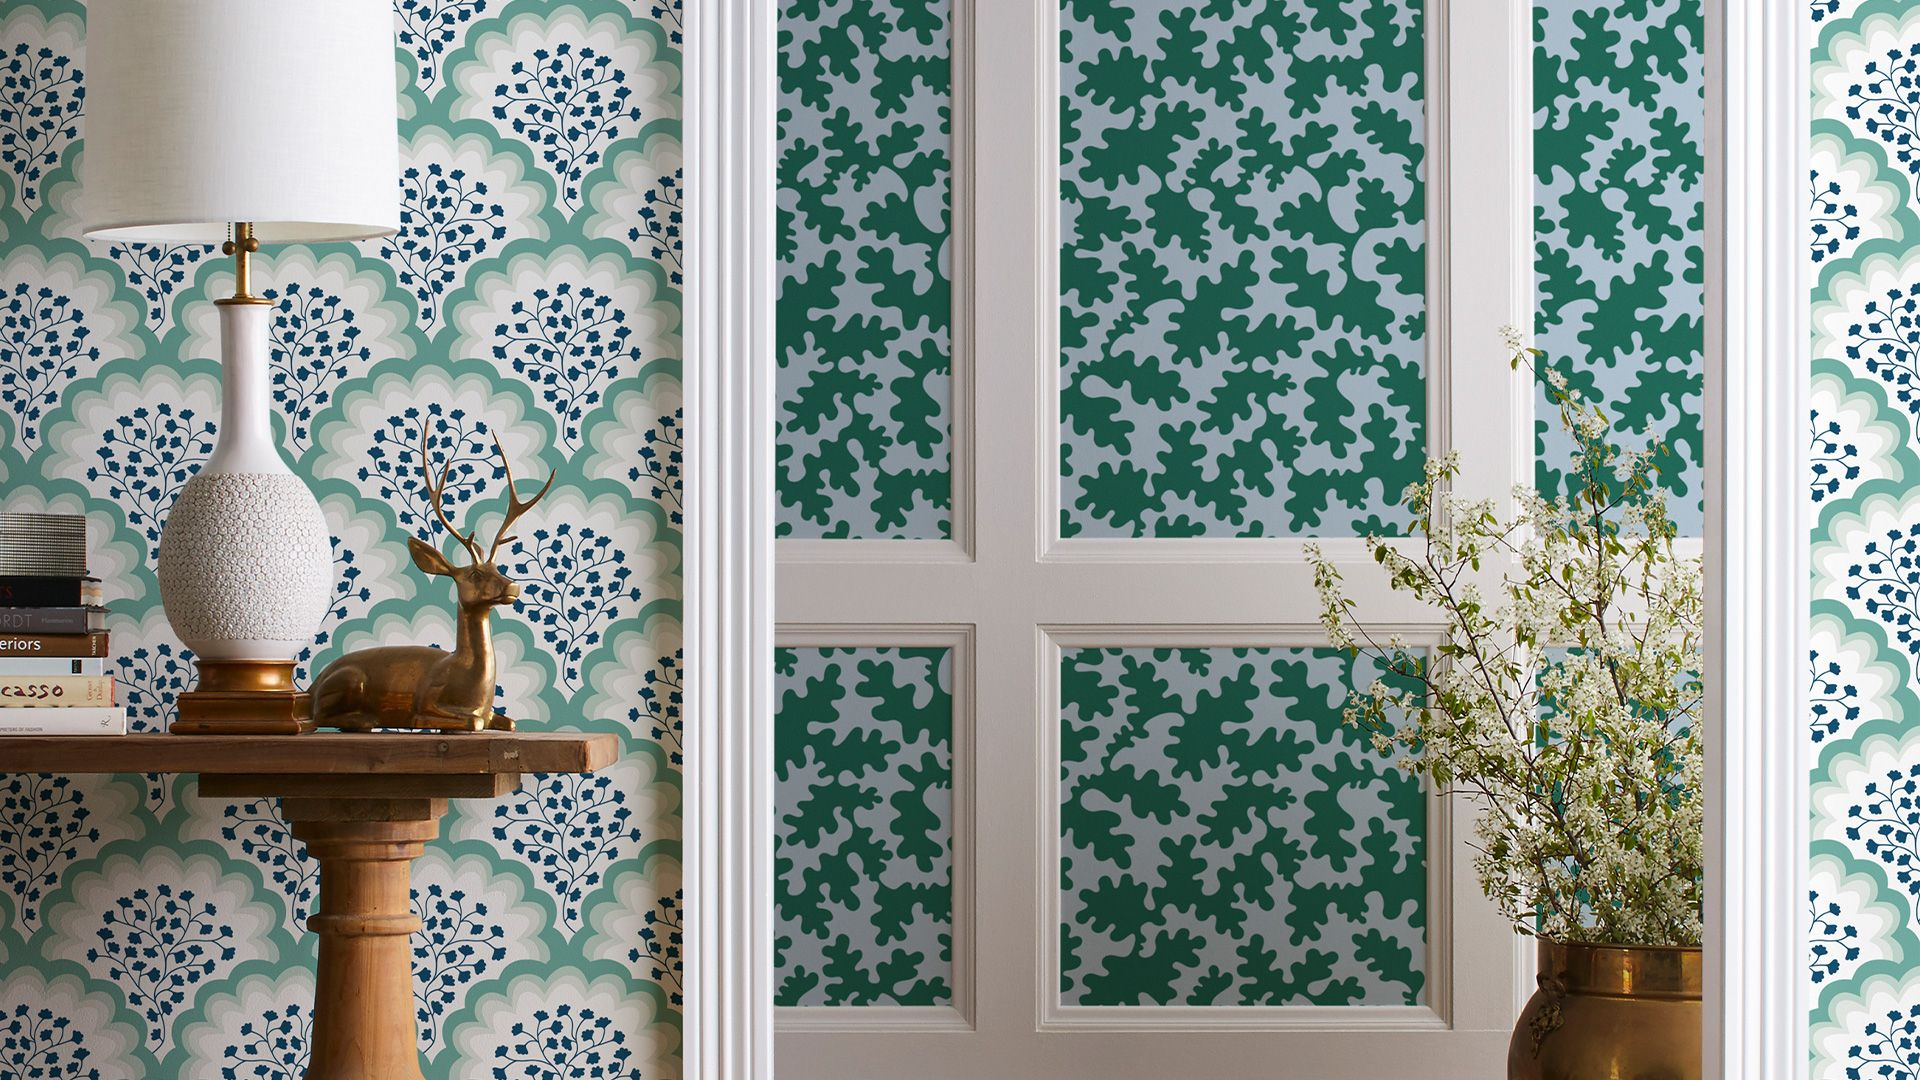 13 Home Decor Zoom Backgrounds That Ll Make It Look Like You Just Redecorated Decor Chic Wallpaper Redecorating